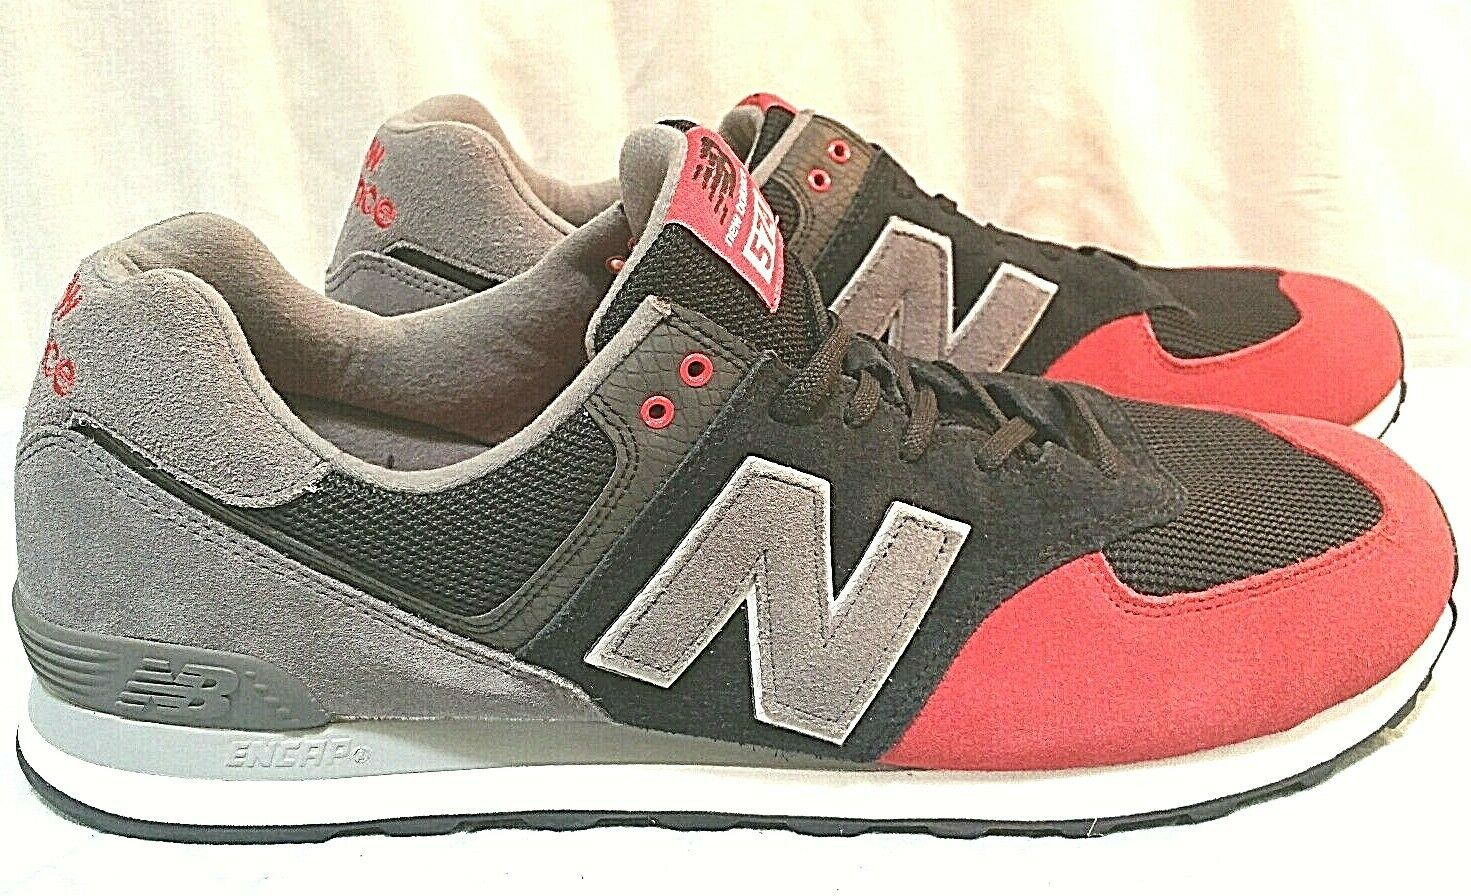 NEW BALANCE 574 CLASSIC MEN'S RUNNING SHOE Size 18 Wide Red  Blk ML574TIU